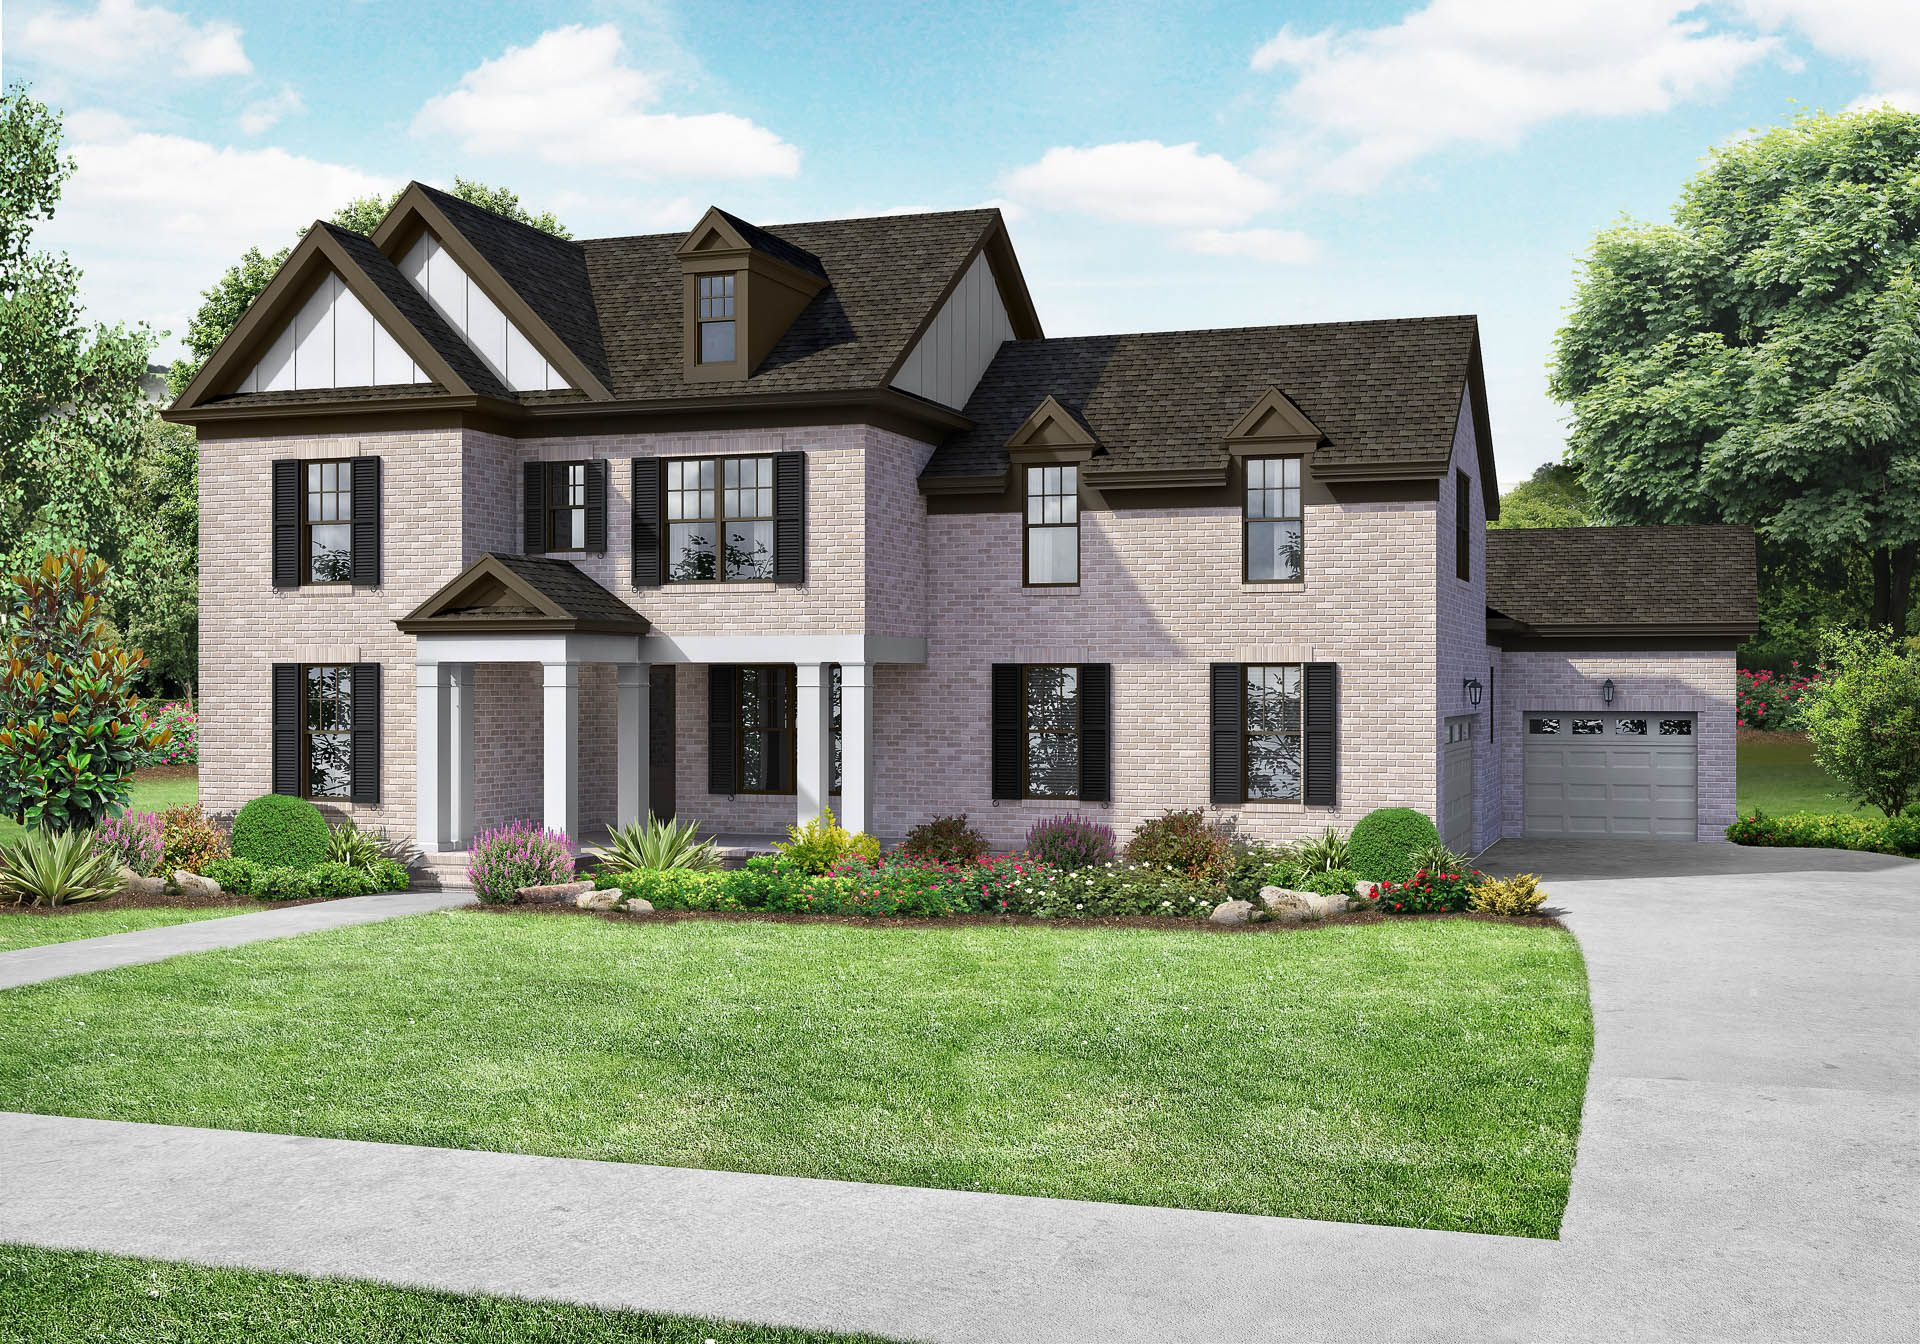 Single Family for Active at The Hathaway B 5612 Bridgemore Boulevard Murfreesboro, Tennessee 37129 United States